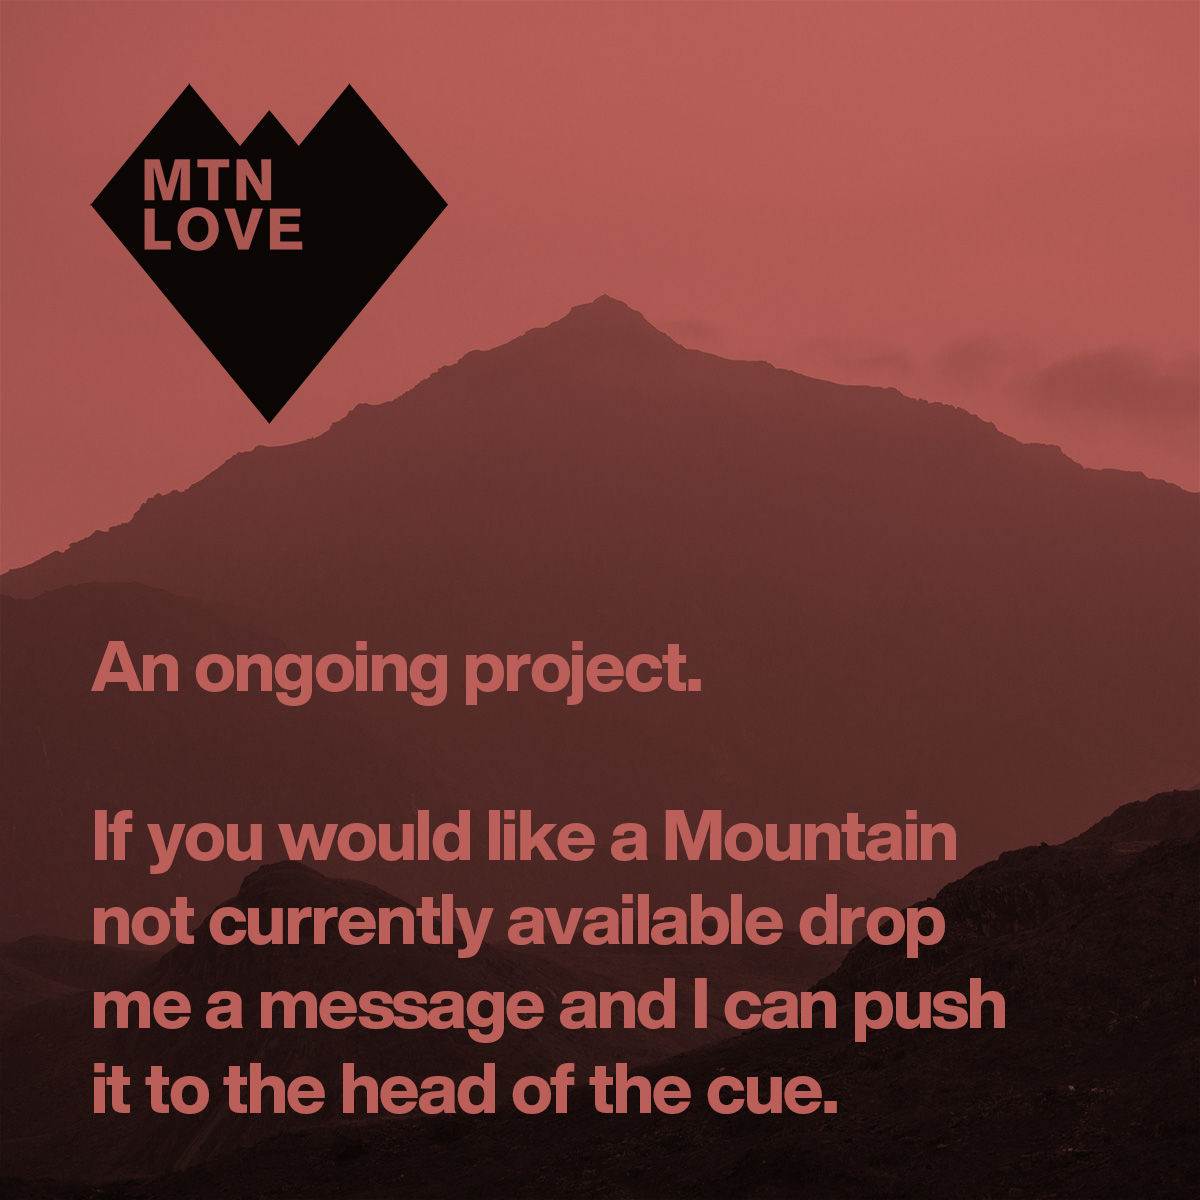 MTN Love - An ongoing project - product image